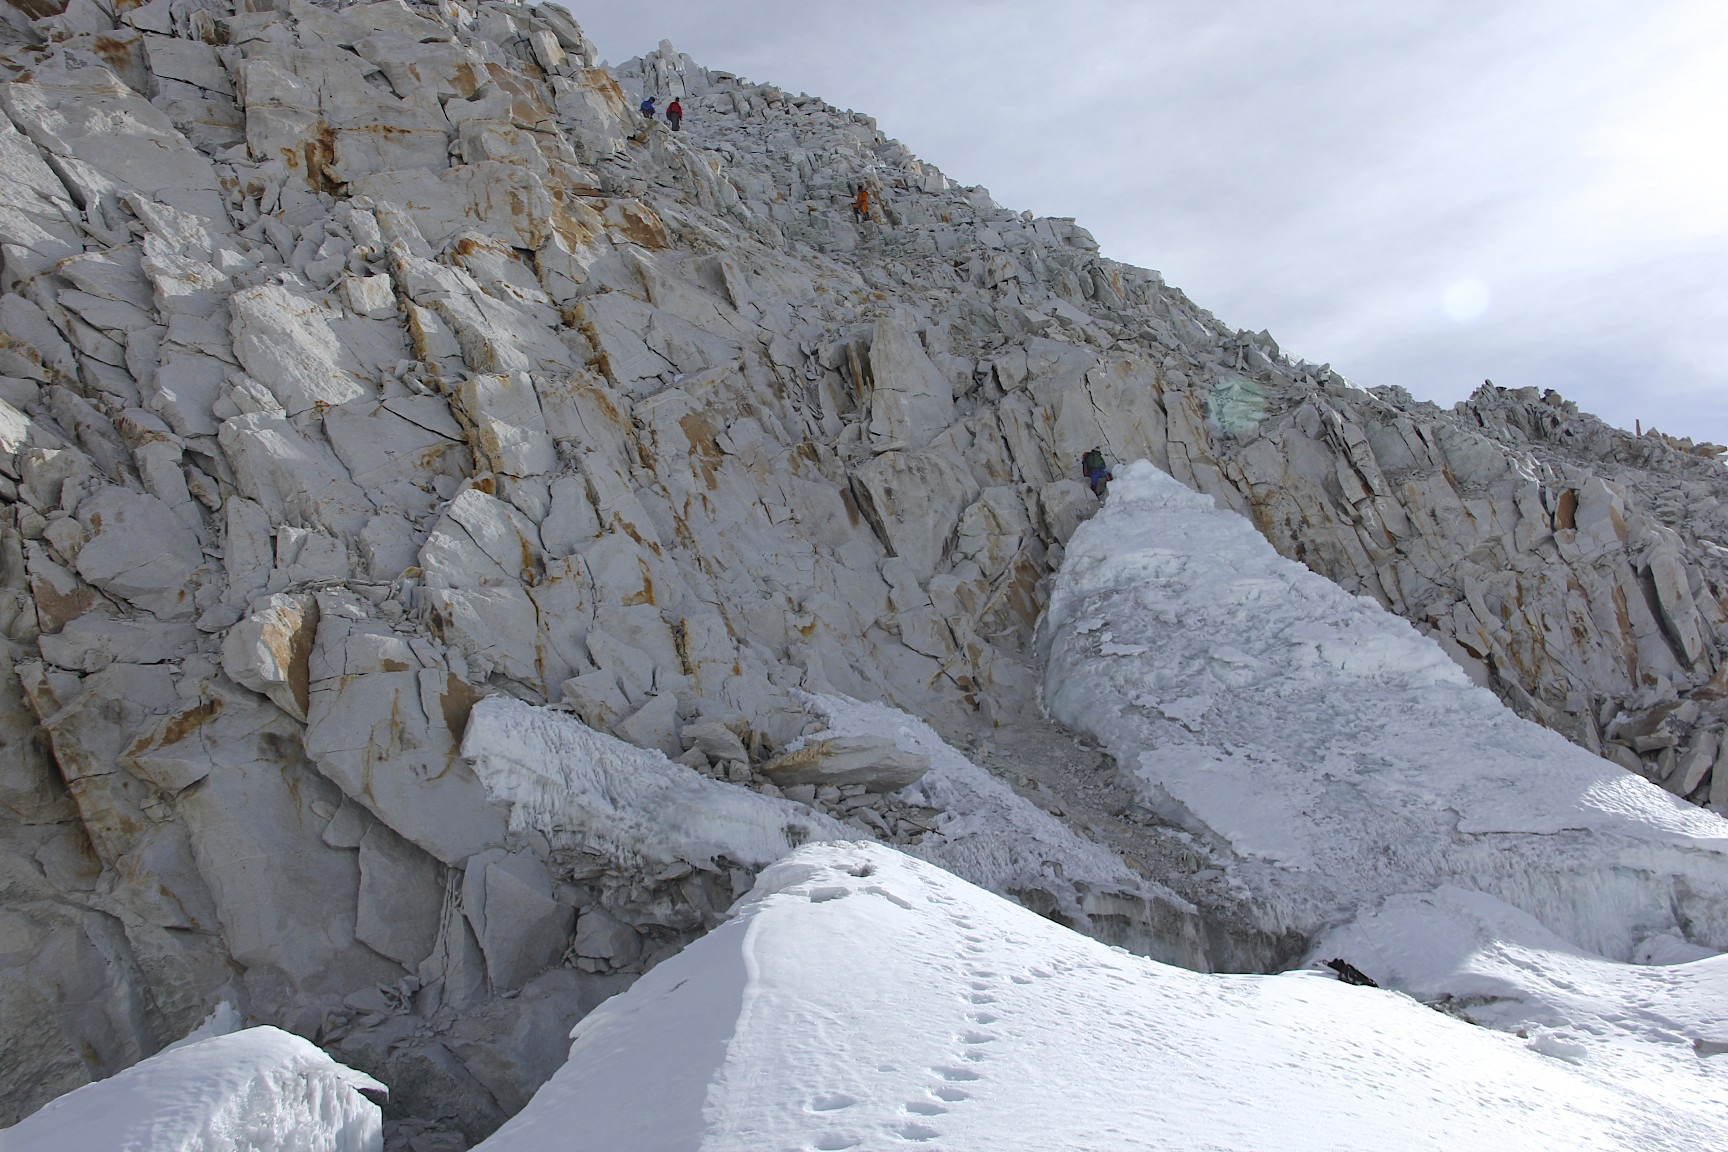 Descent from Sherpani Col